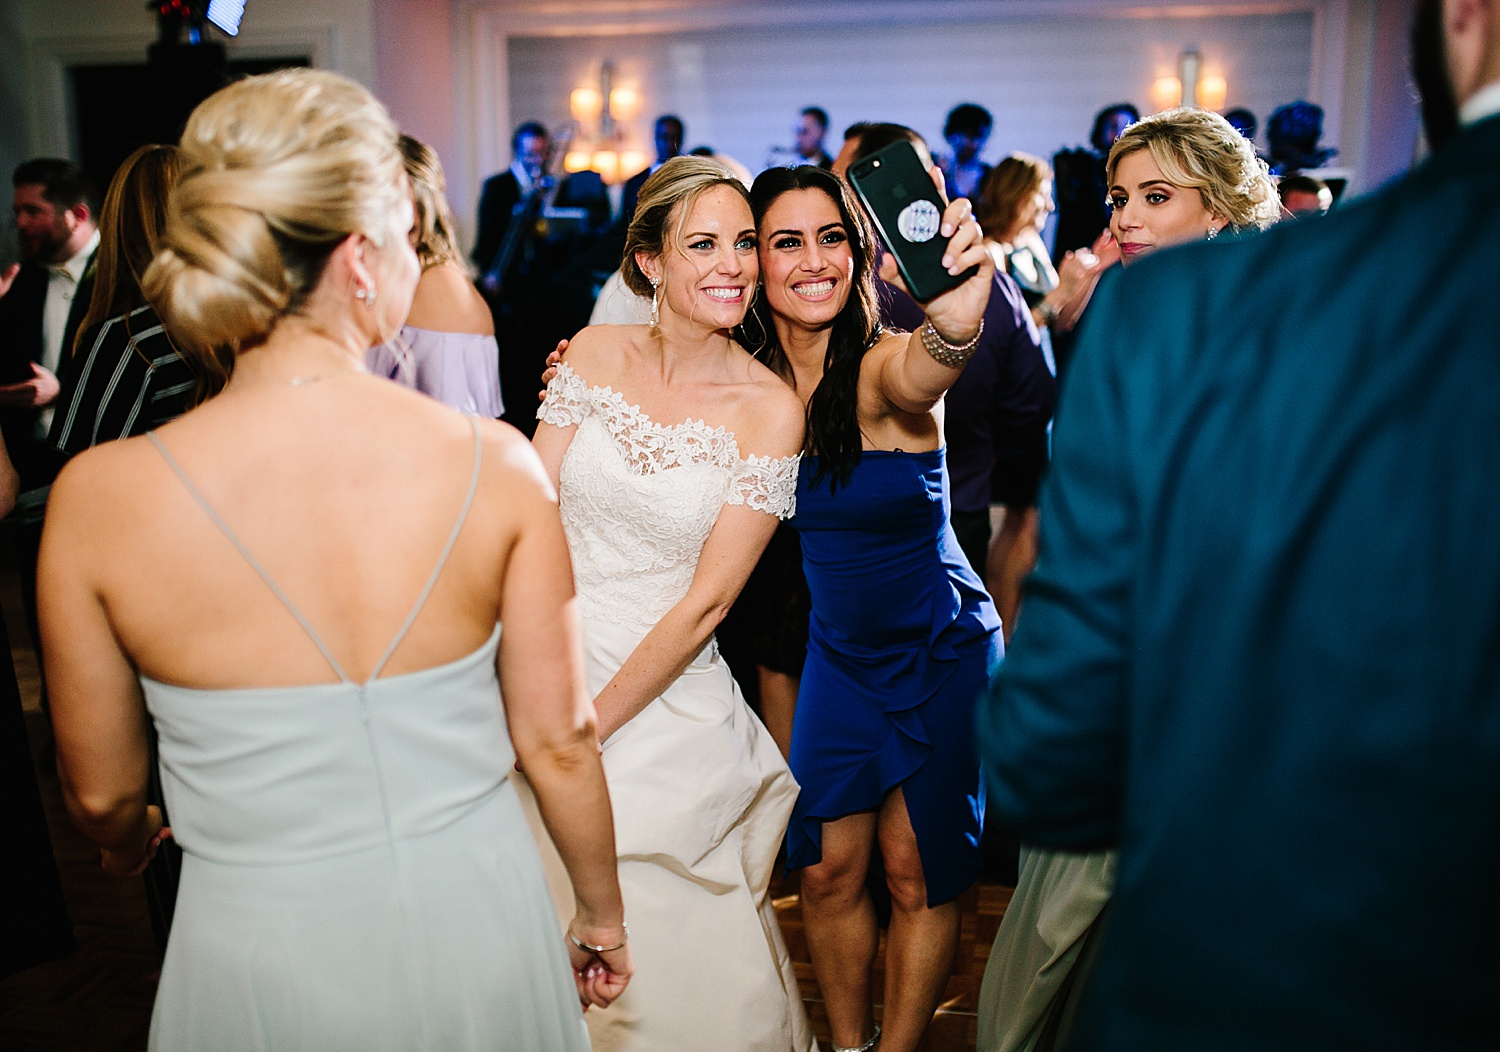 courtneyryan_sheraton_societyhill_philadelphia_merchantsexchange_wedding_image102.jpg